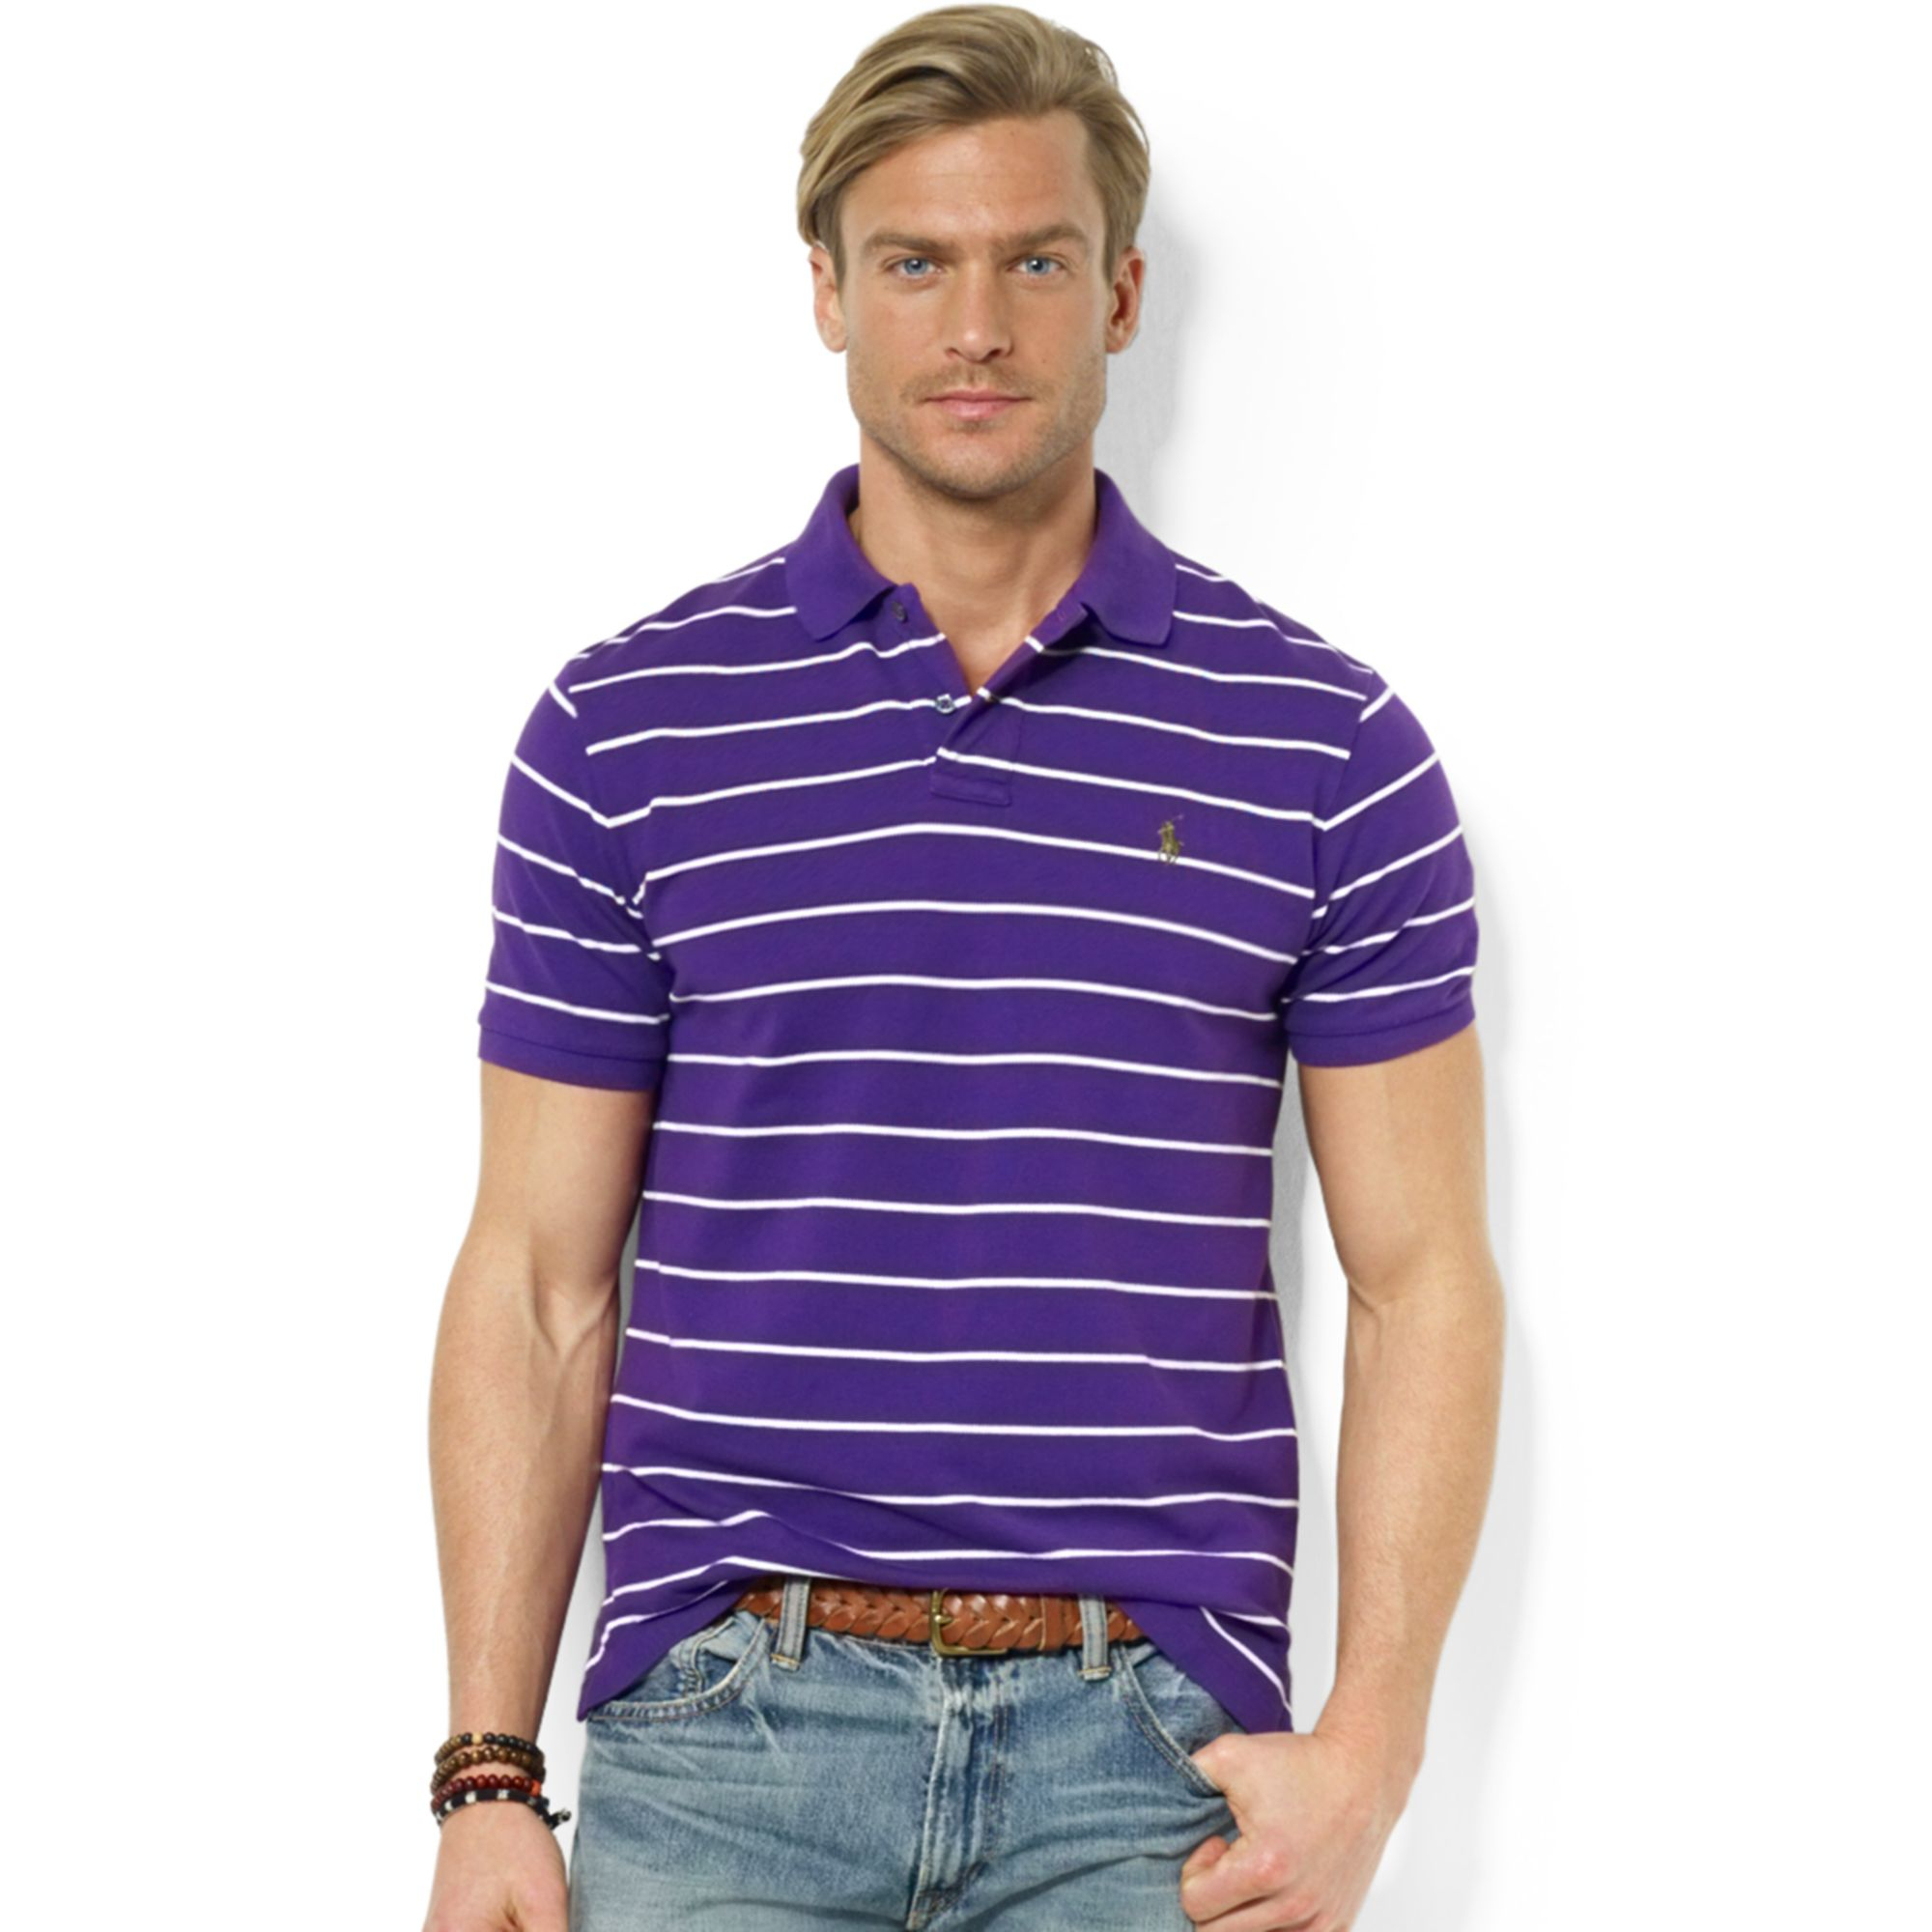 Lyst ralph lauren polo customfit striped stretchmesh for Man in polo shirt